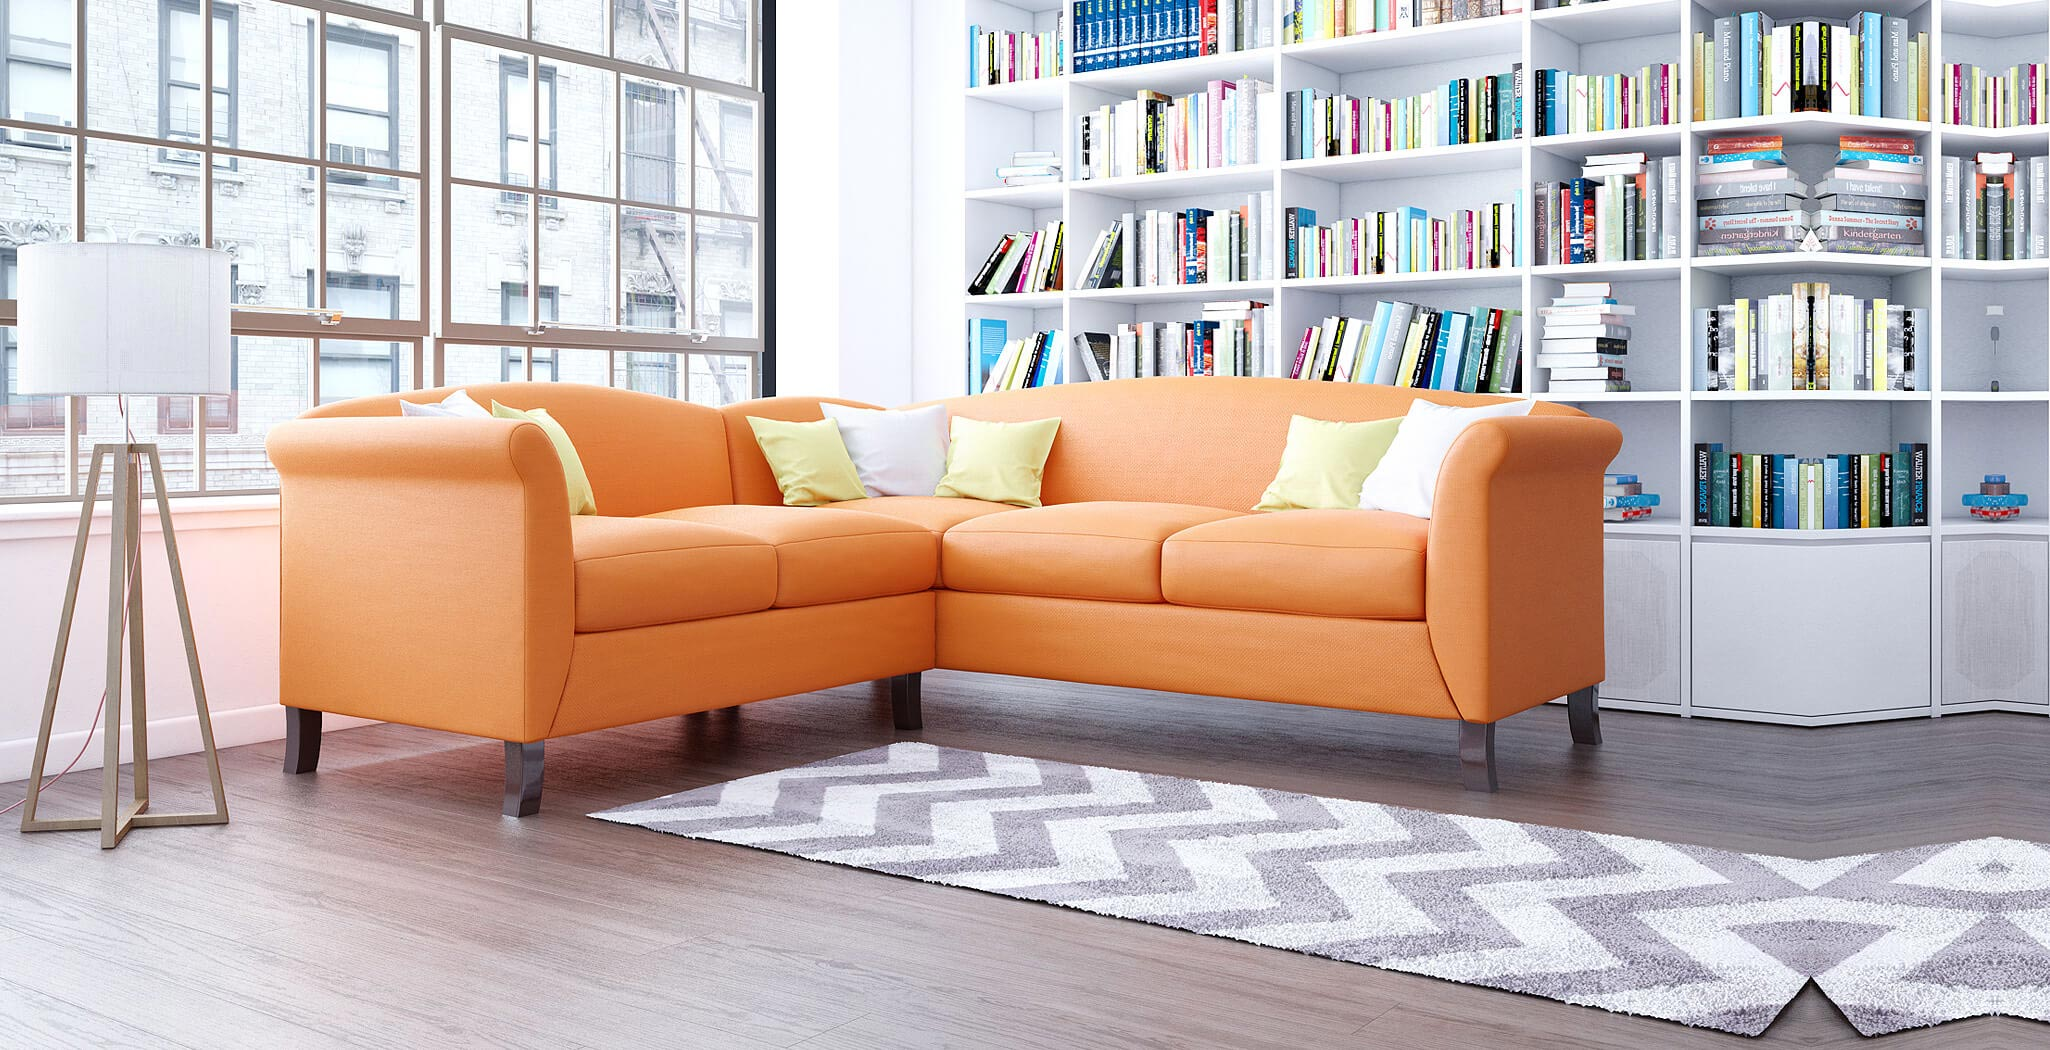 crete sectional furniture gallery 1